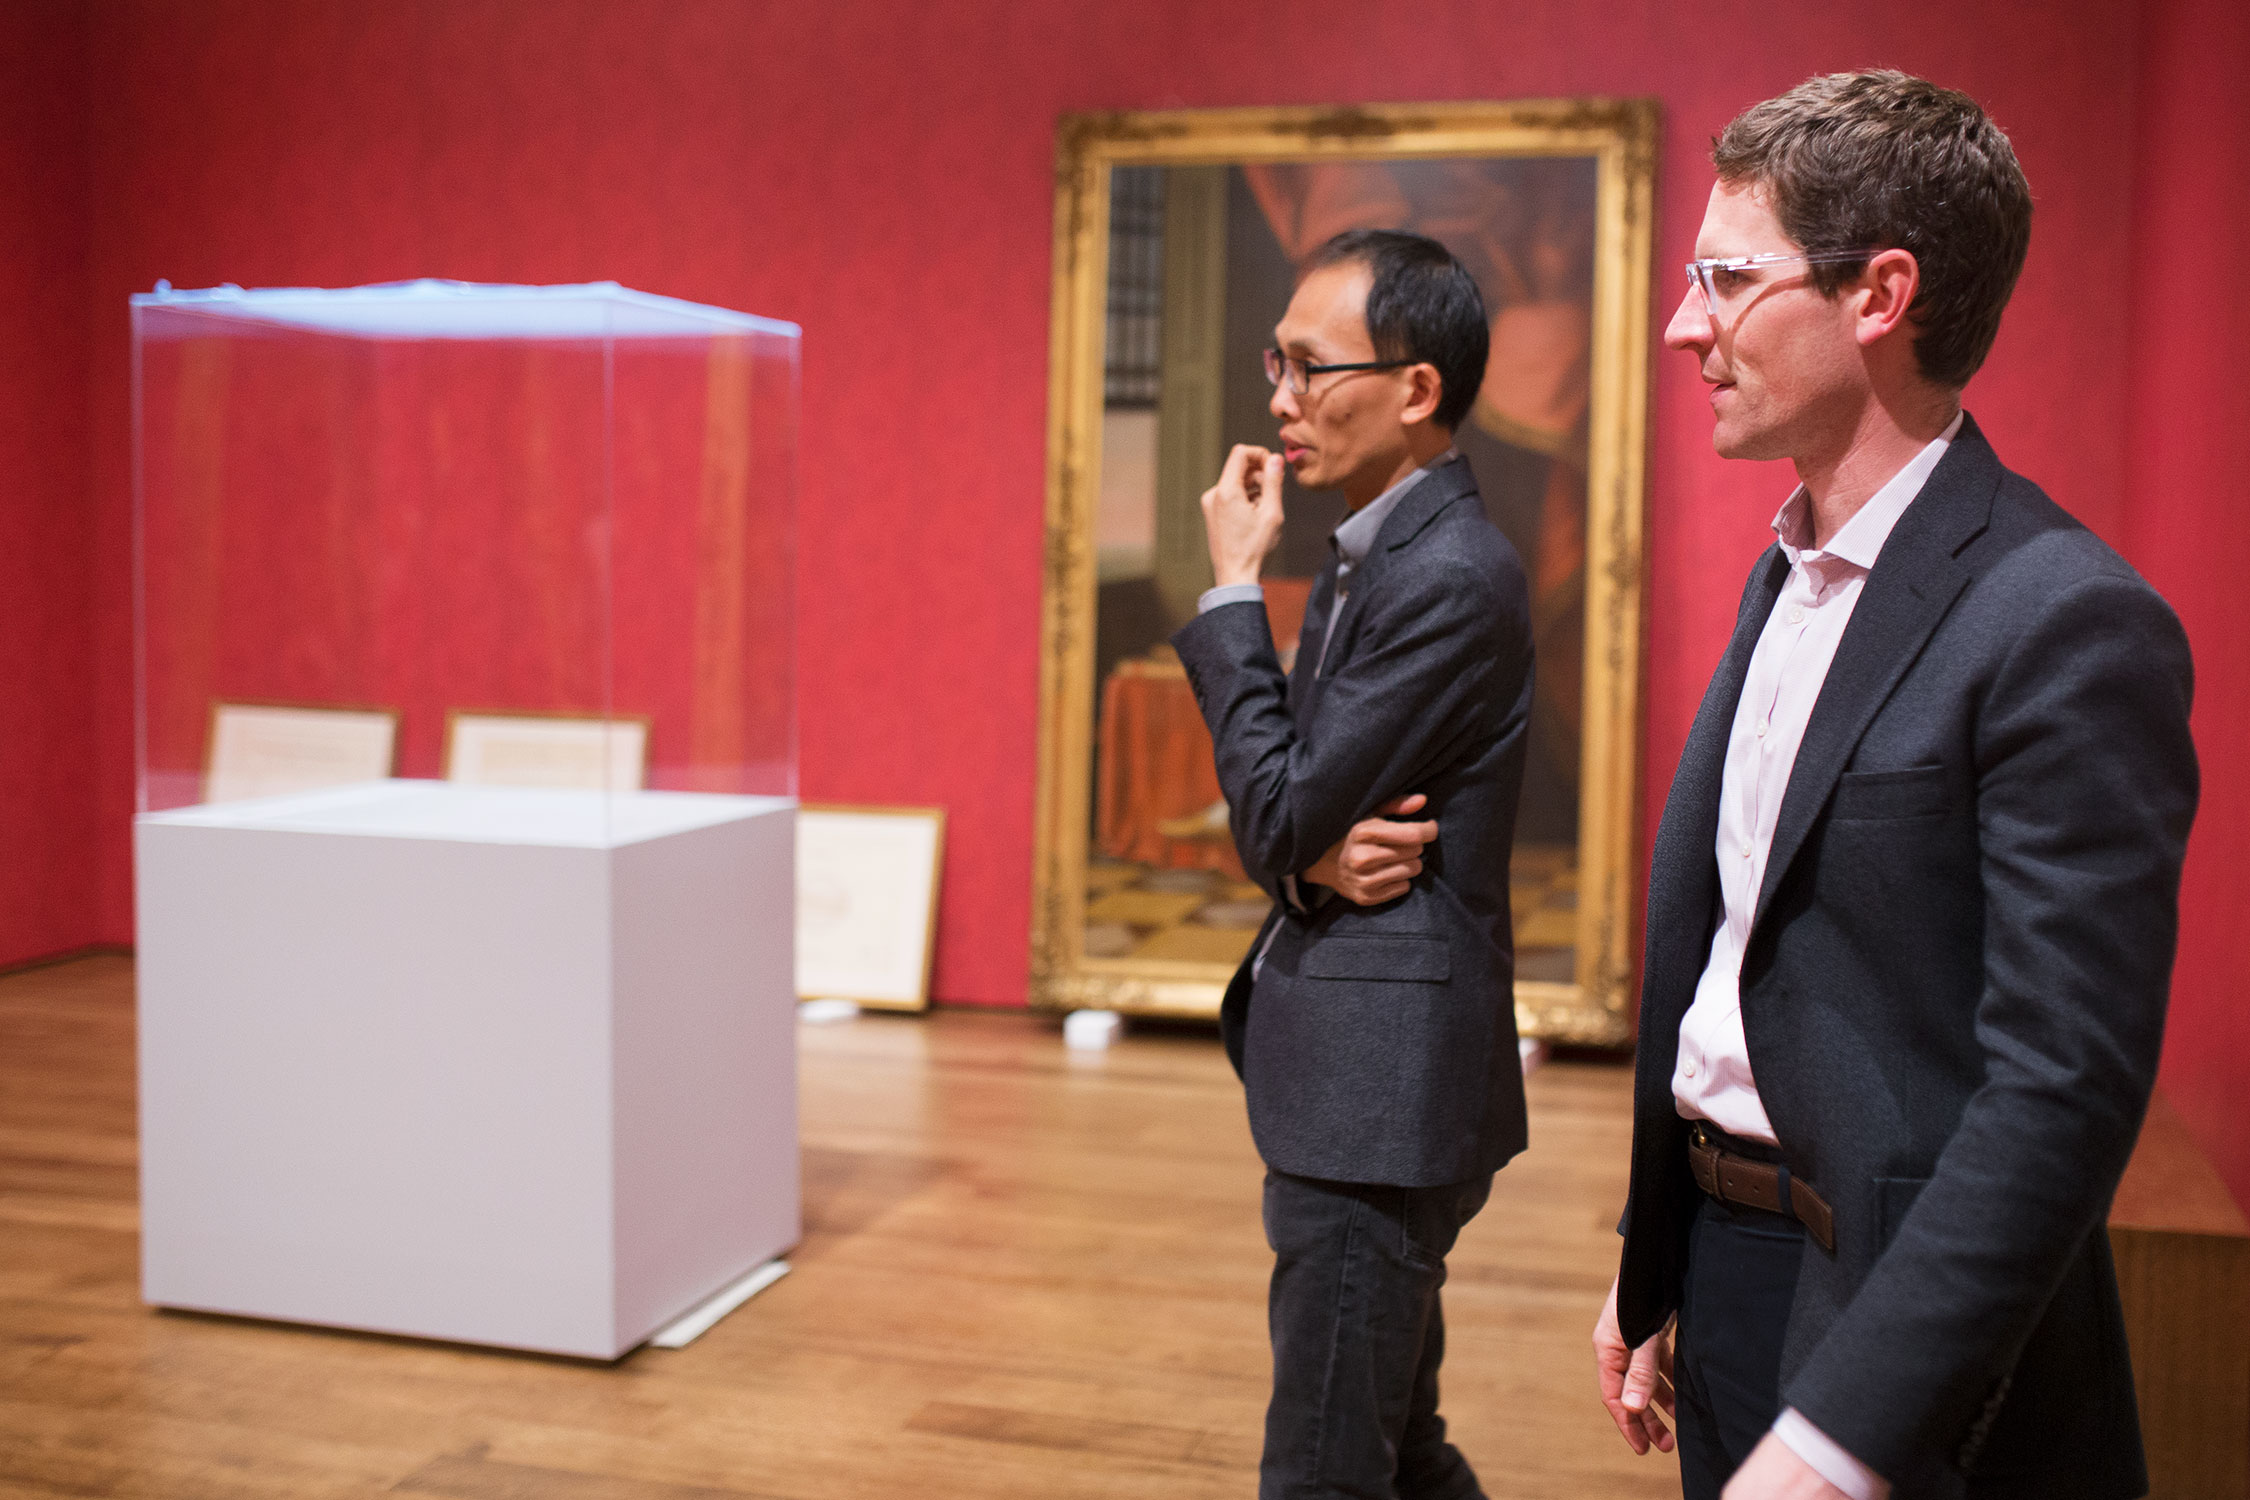 Exhibition designer Justin Lee, left, discusses the placement of objects with Ethan Lasser, curator of the exhibition.